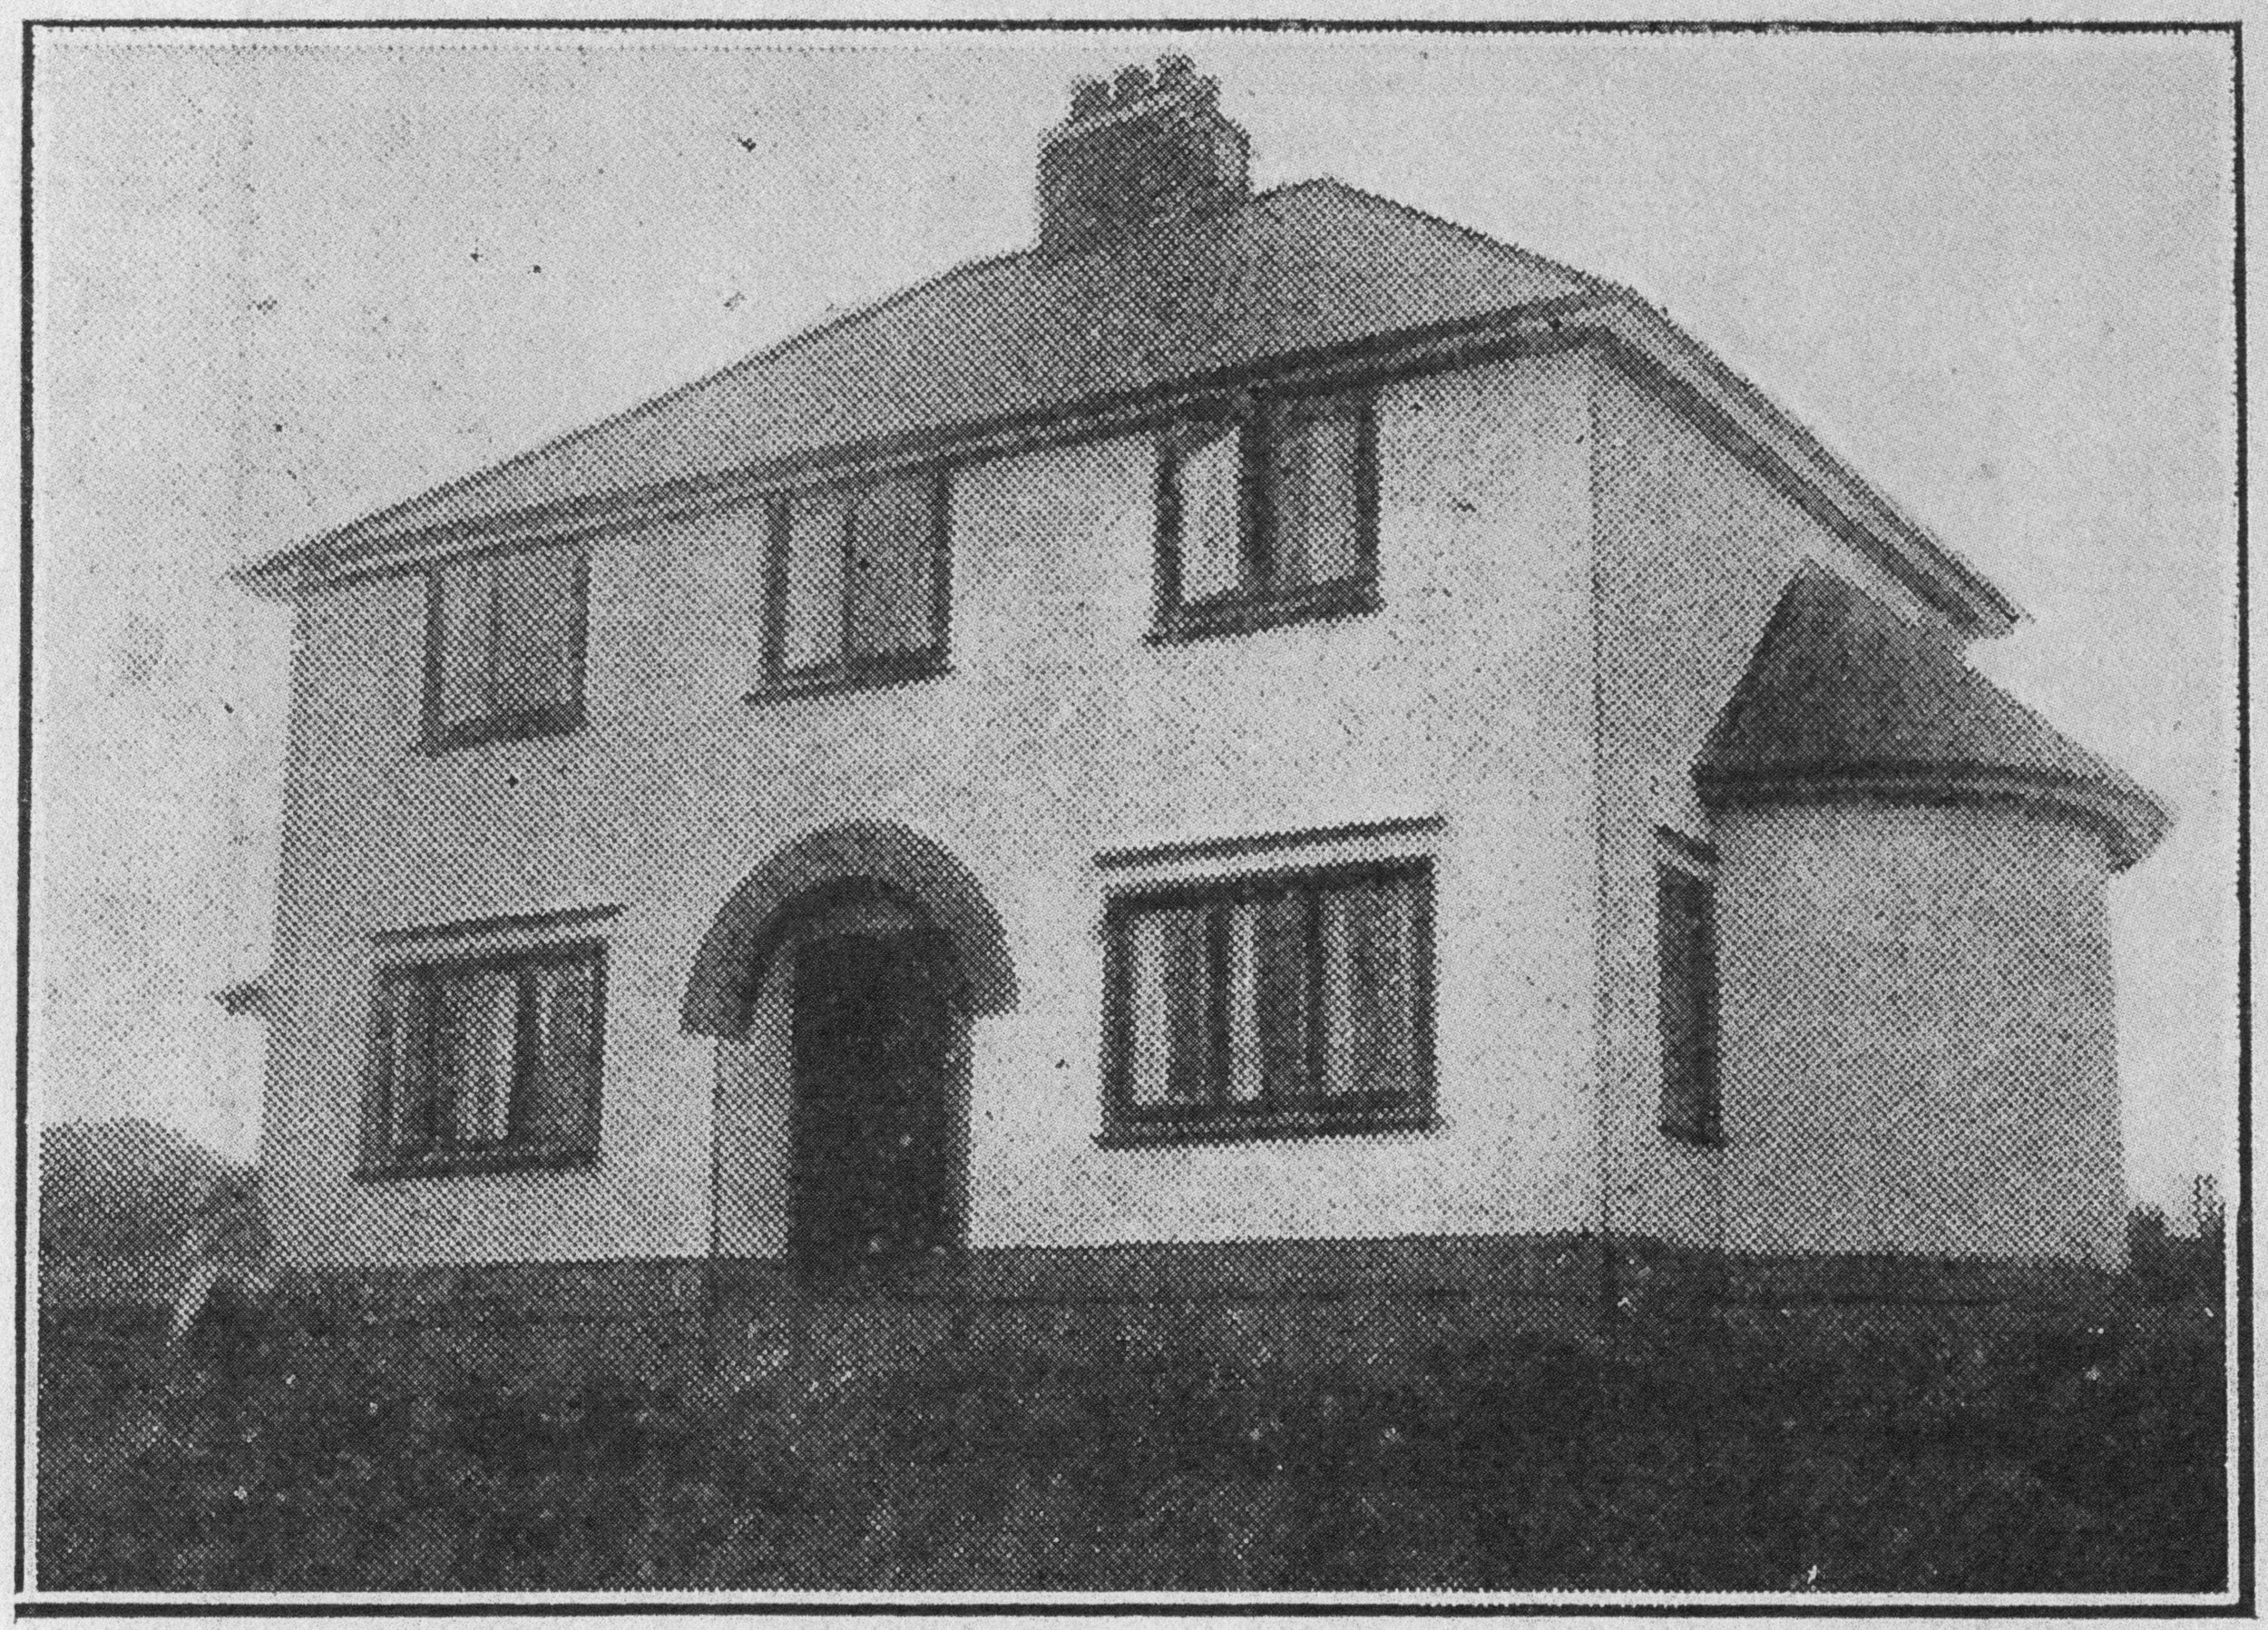 Family house by Florence Fulton Hobson, Ireland